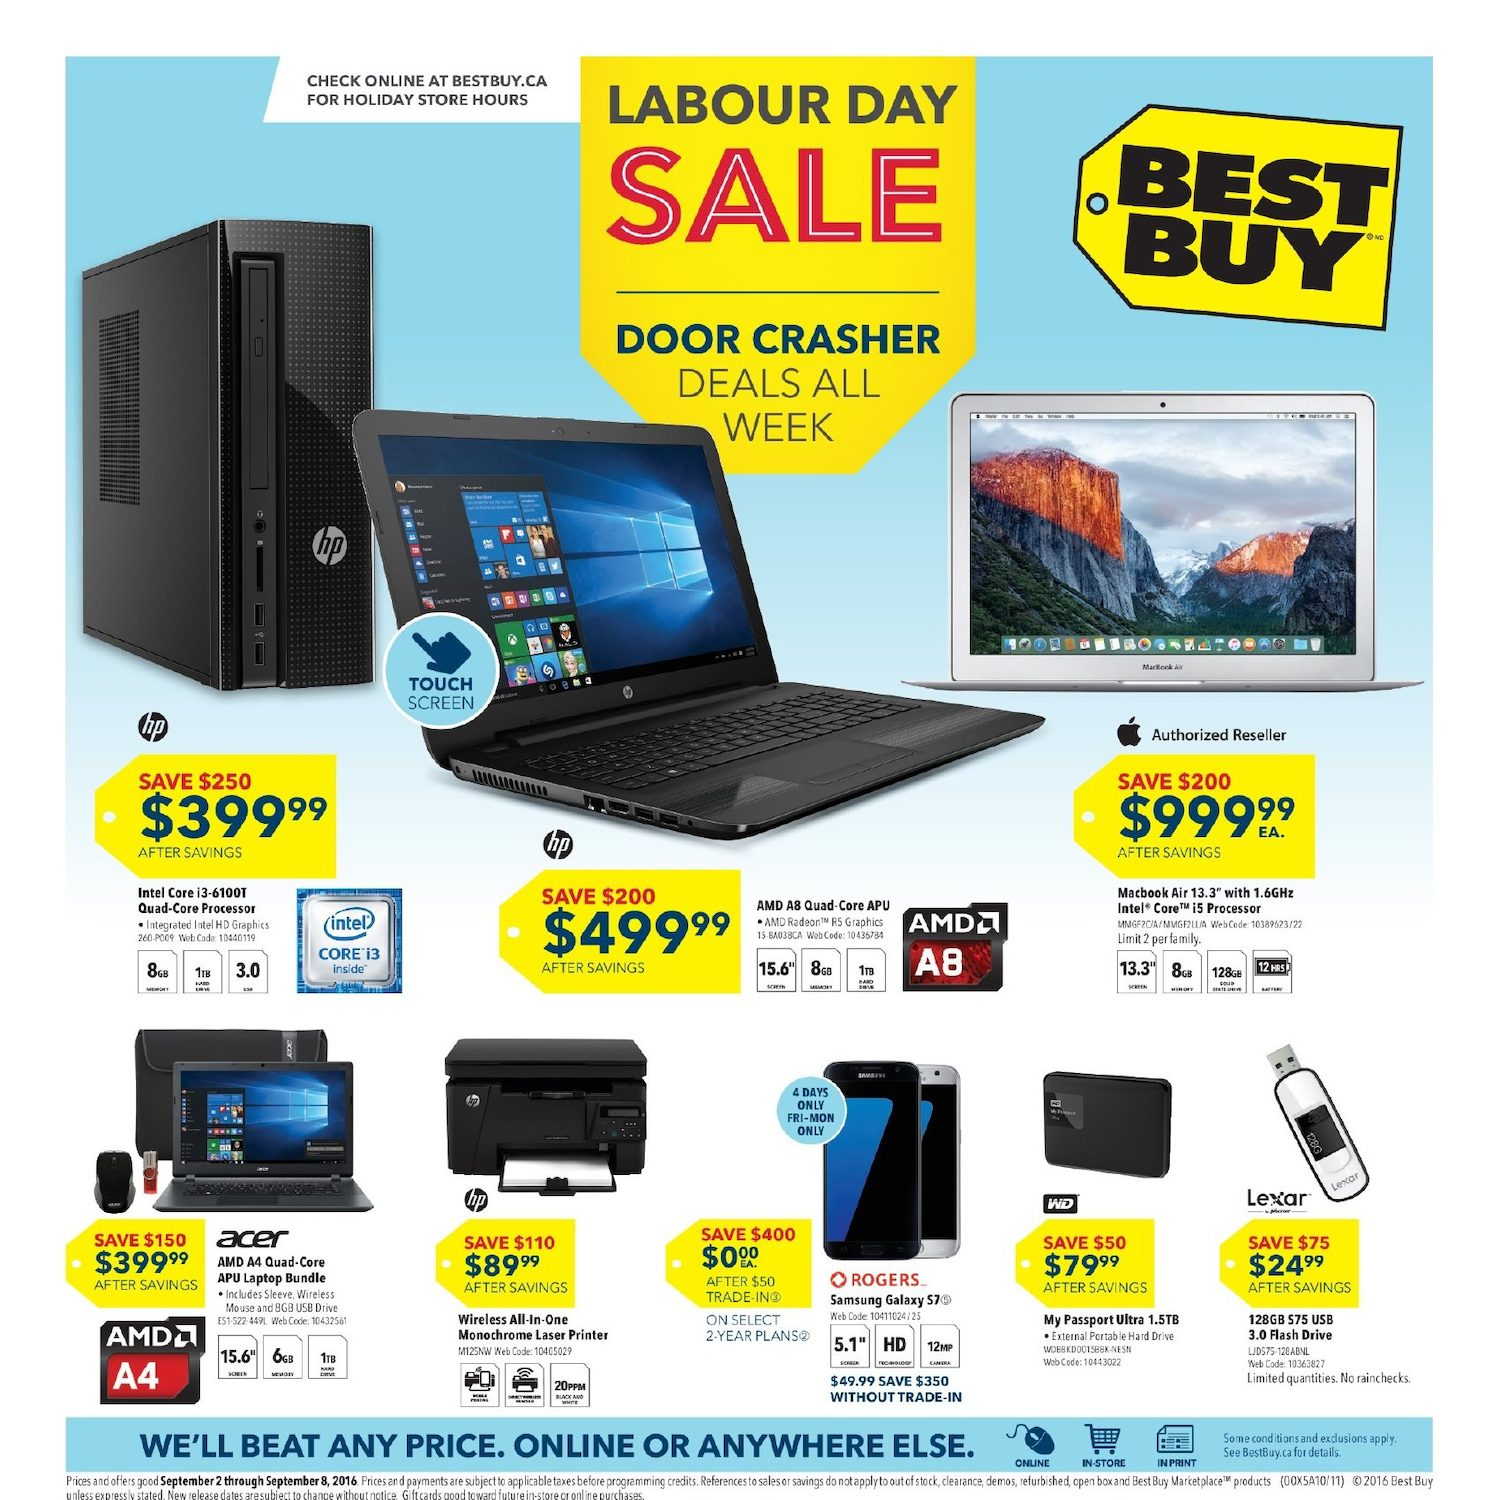 Best buy weekly flyer weekly labour day sale sep 2 8 best buy weekly flyer weekly labour day sale sep 2 8 redflagdeals fandeluxe Image collections